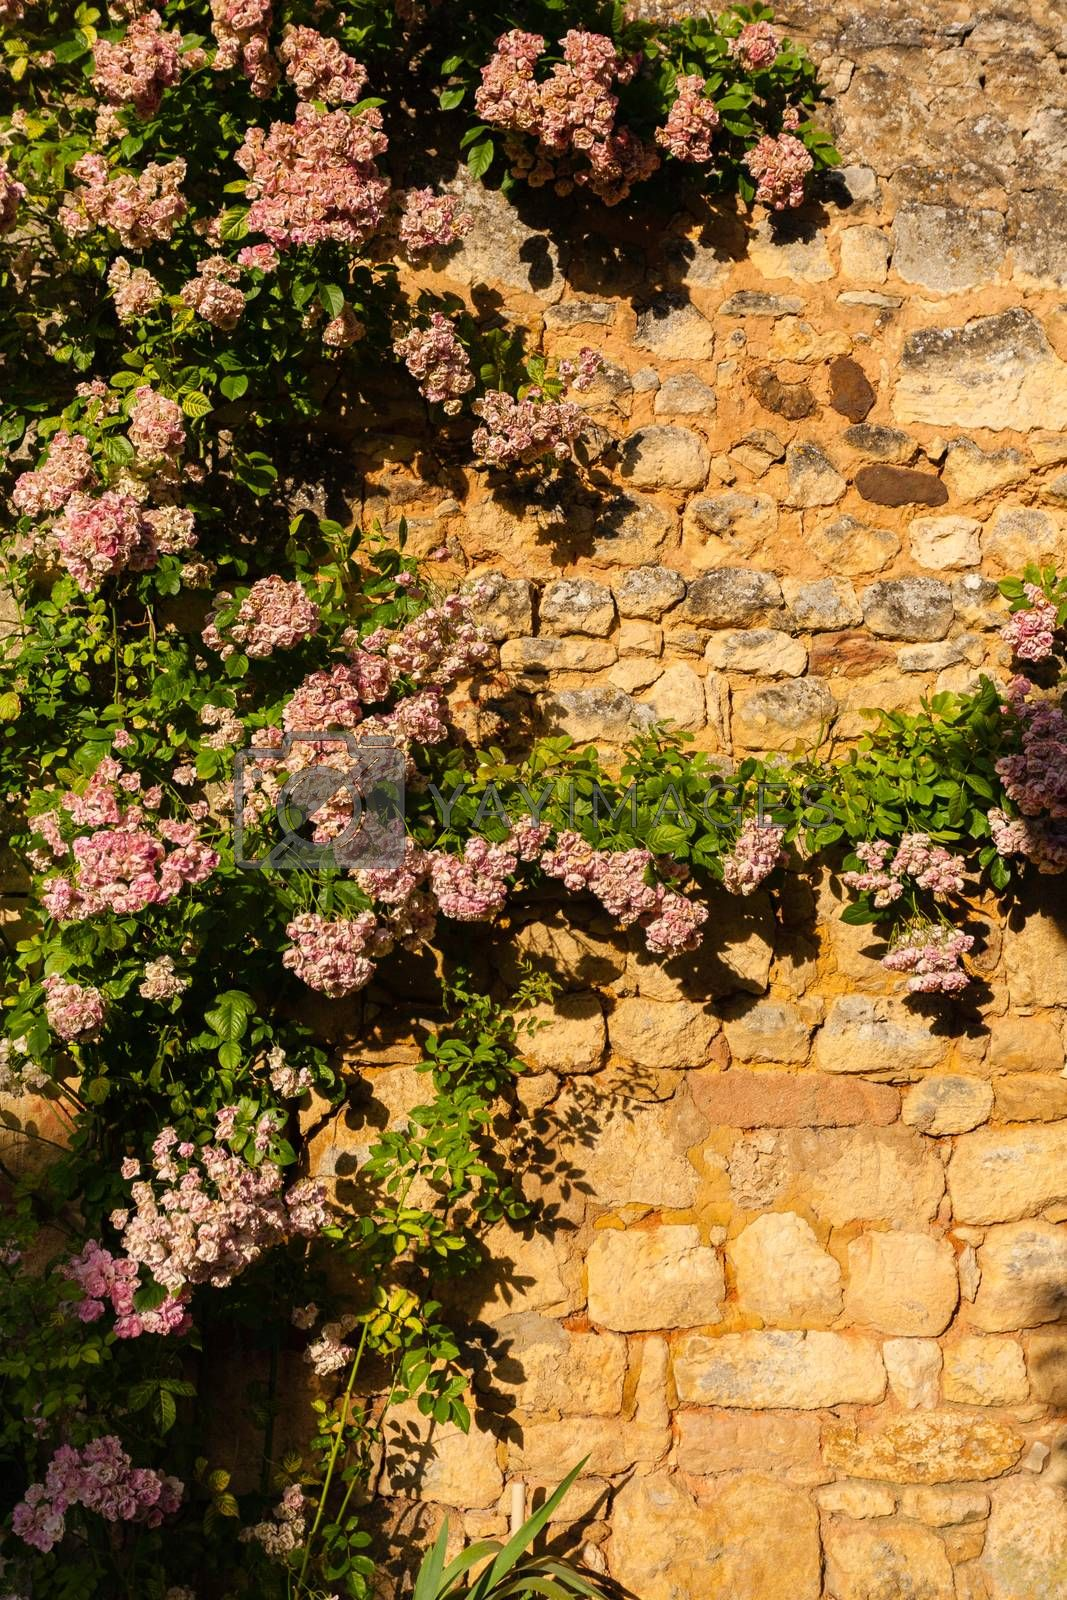 Rose climbing plant in a wall in the Dordogne region of France